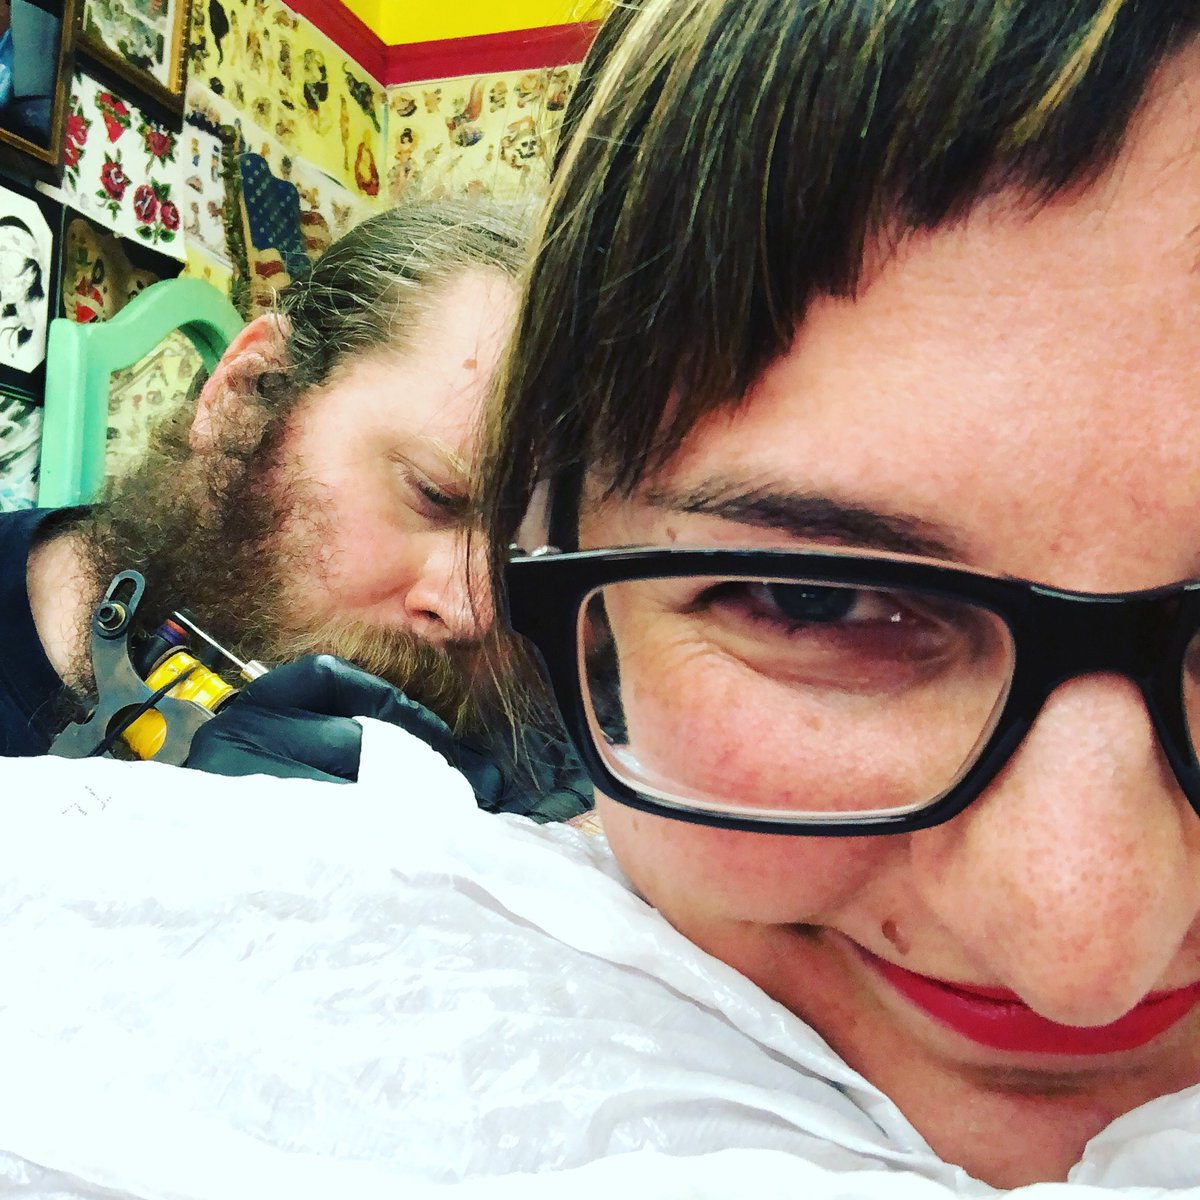 """Sitting here getting a #BlueWave tattoo (to symbolize the power we're building around the US.) It hurts, but my phone is blowin' up w/ news of friends rec'g the #labor endorsement &amp; #teachers standing up to say, """"NO!"""" so it's all smiles over here   #RedForEd #PeoplePower<br>http://pic.twitter.com/tIAeo7ZH8z"""